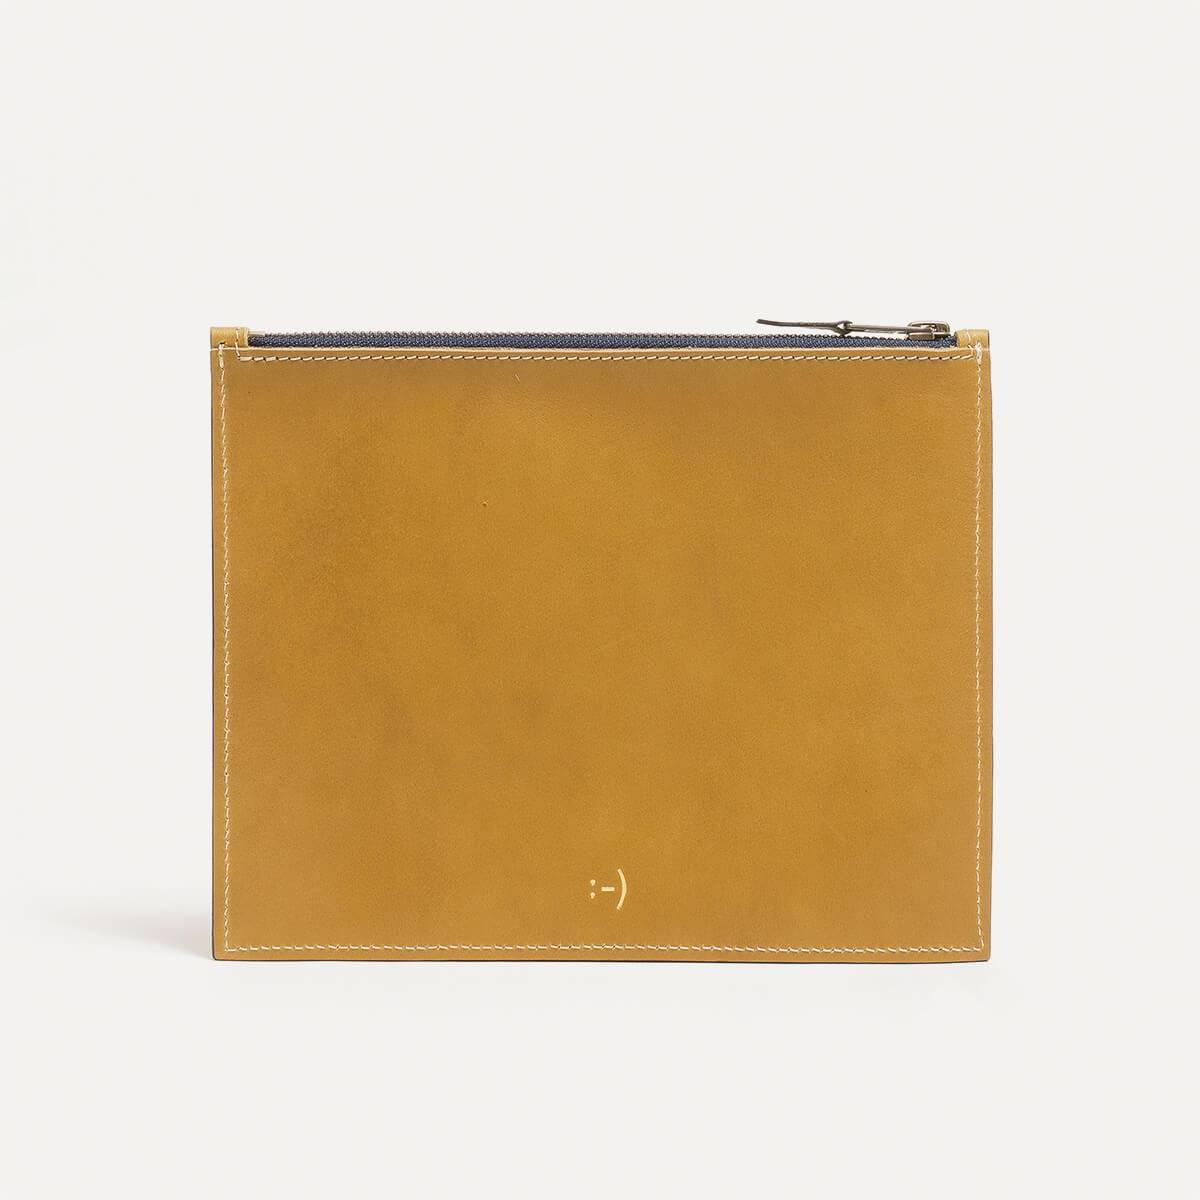 Leather Pouch COSMO M - Yellow (image n°1)